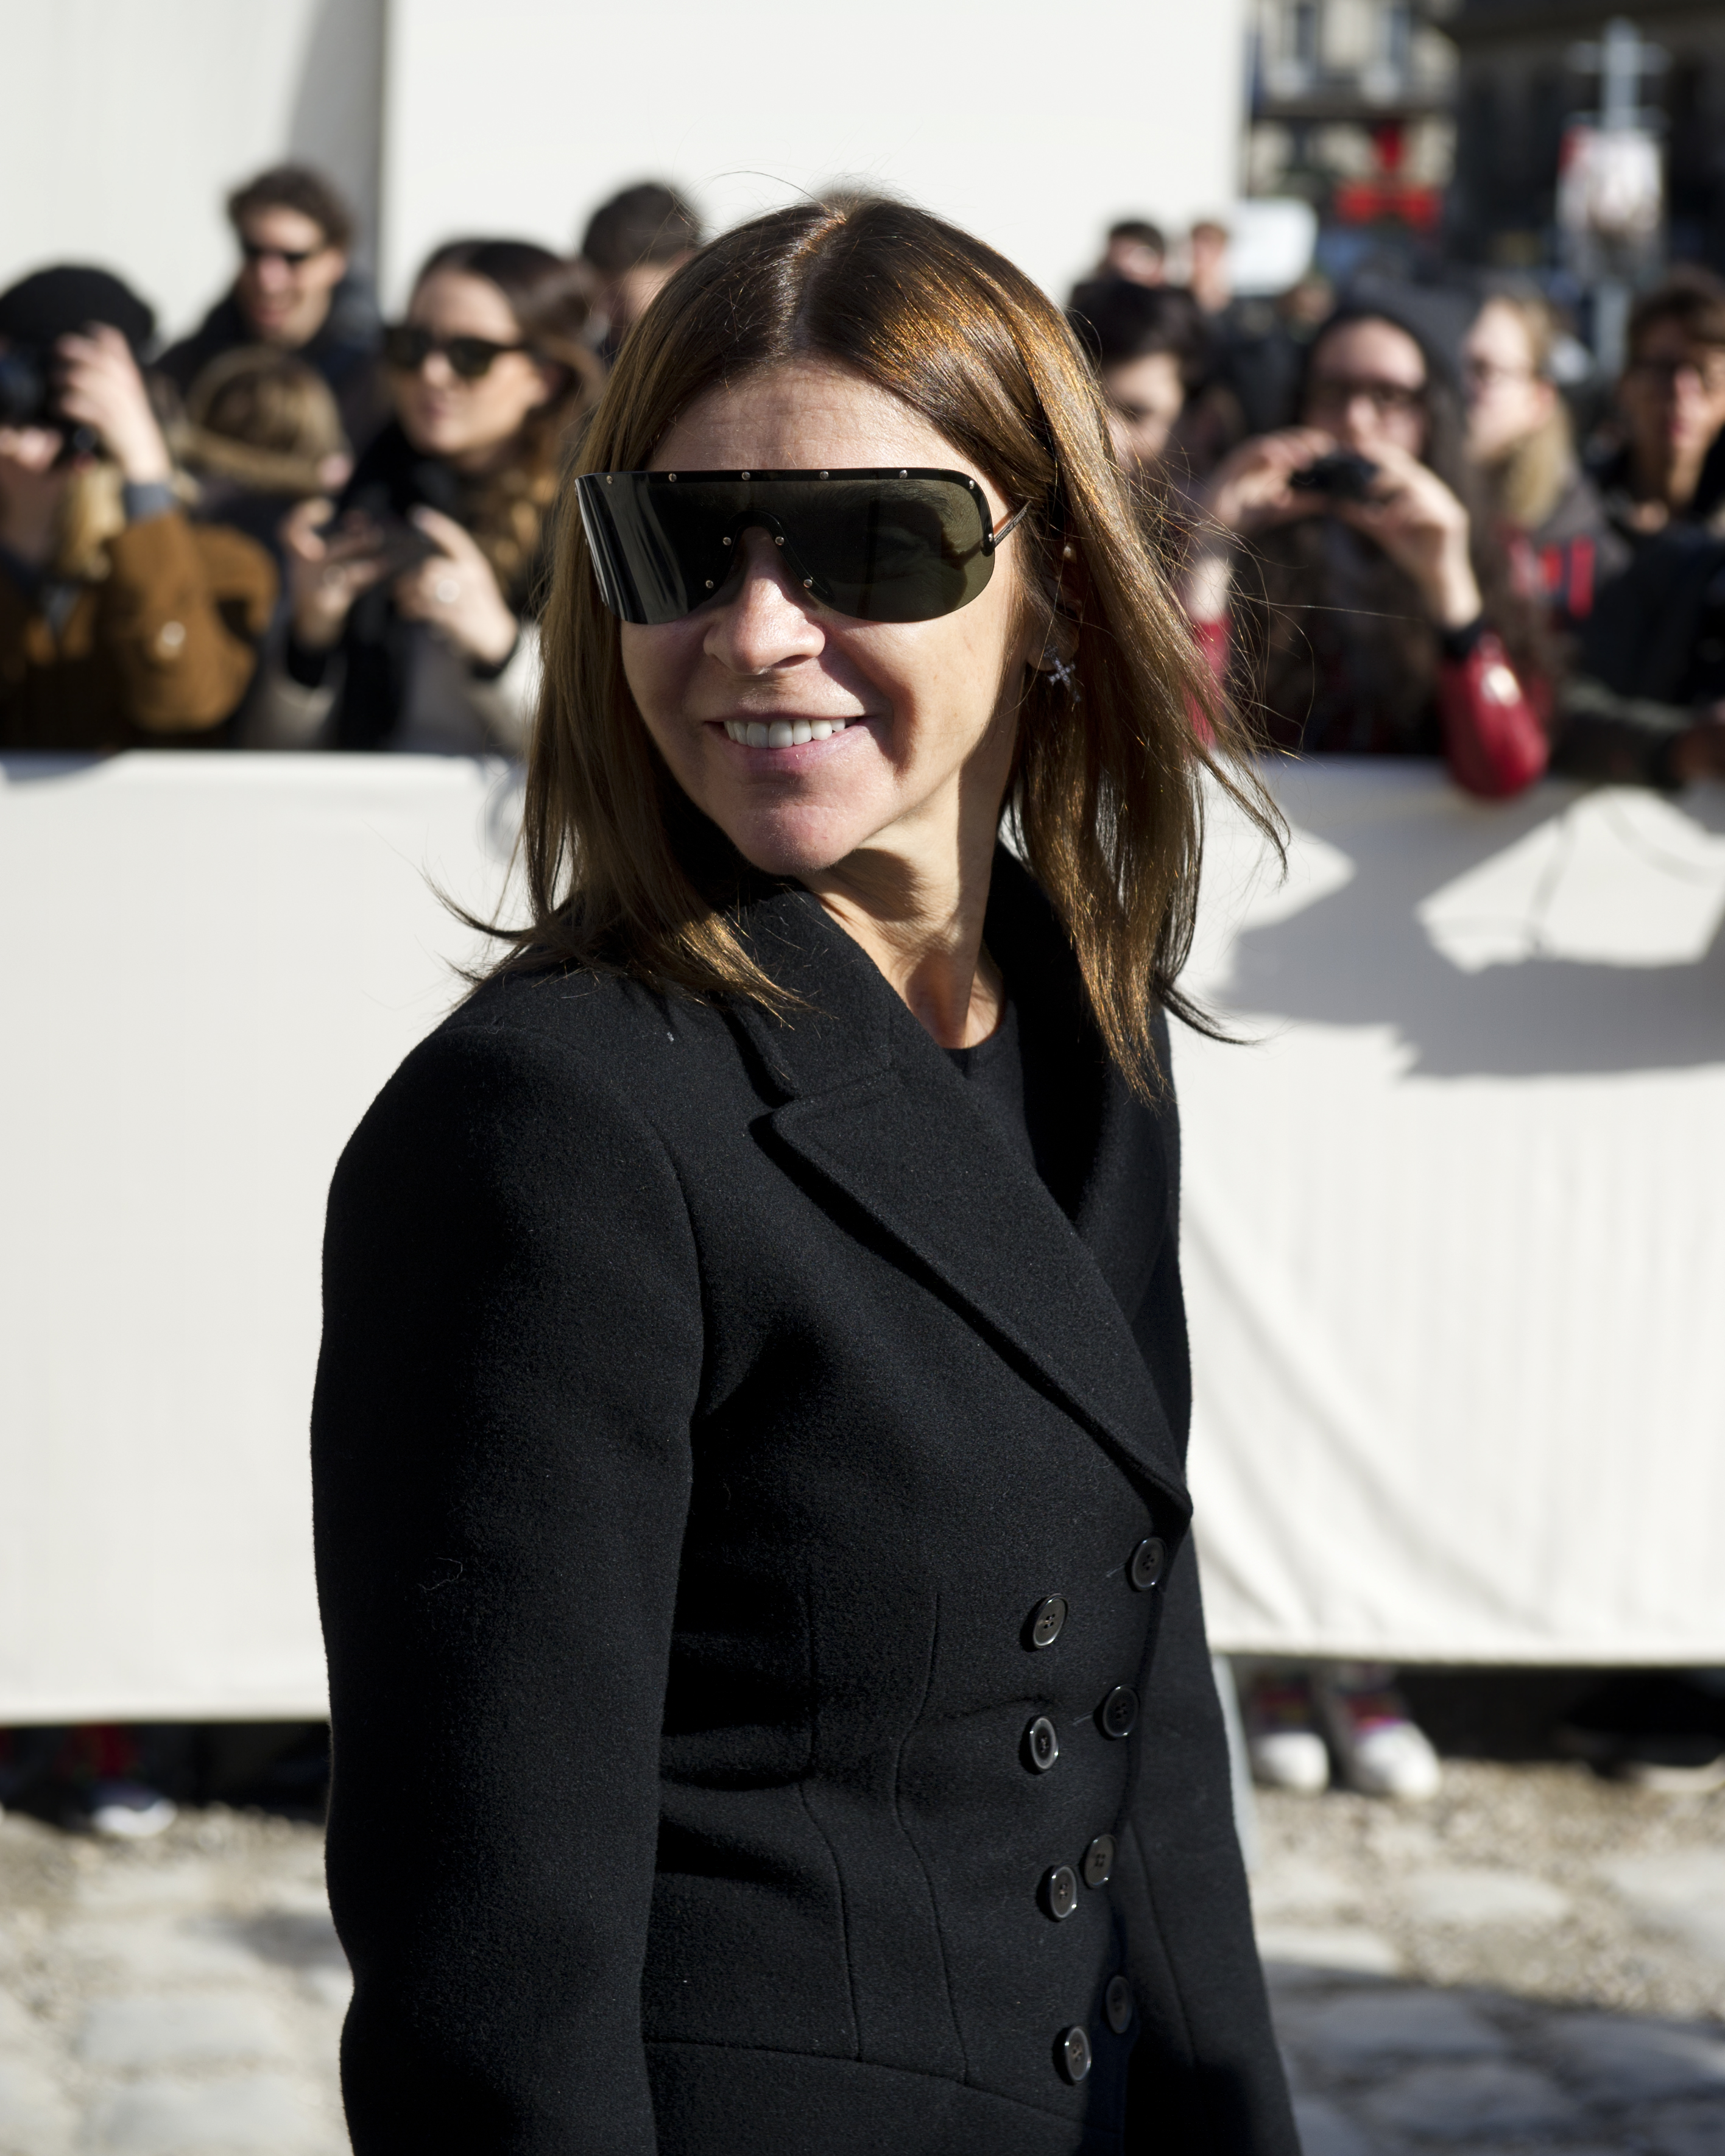 The 64-year old daughter of father Jaques Roitfeld and mother(?) Carine Roitfeld in 2018 photo. Carine Roitfeld earned a  million dollar salary - leaving the net worth at 2 million in 2018